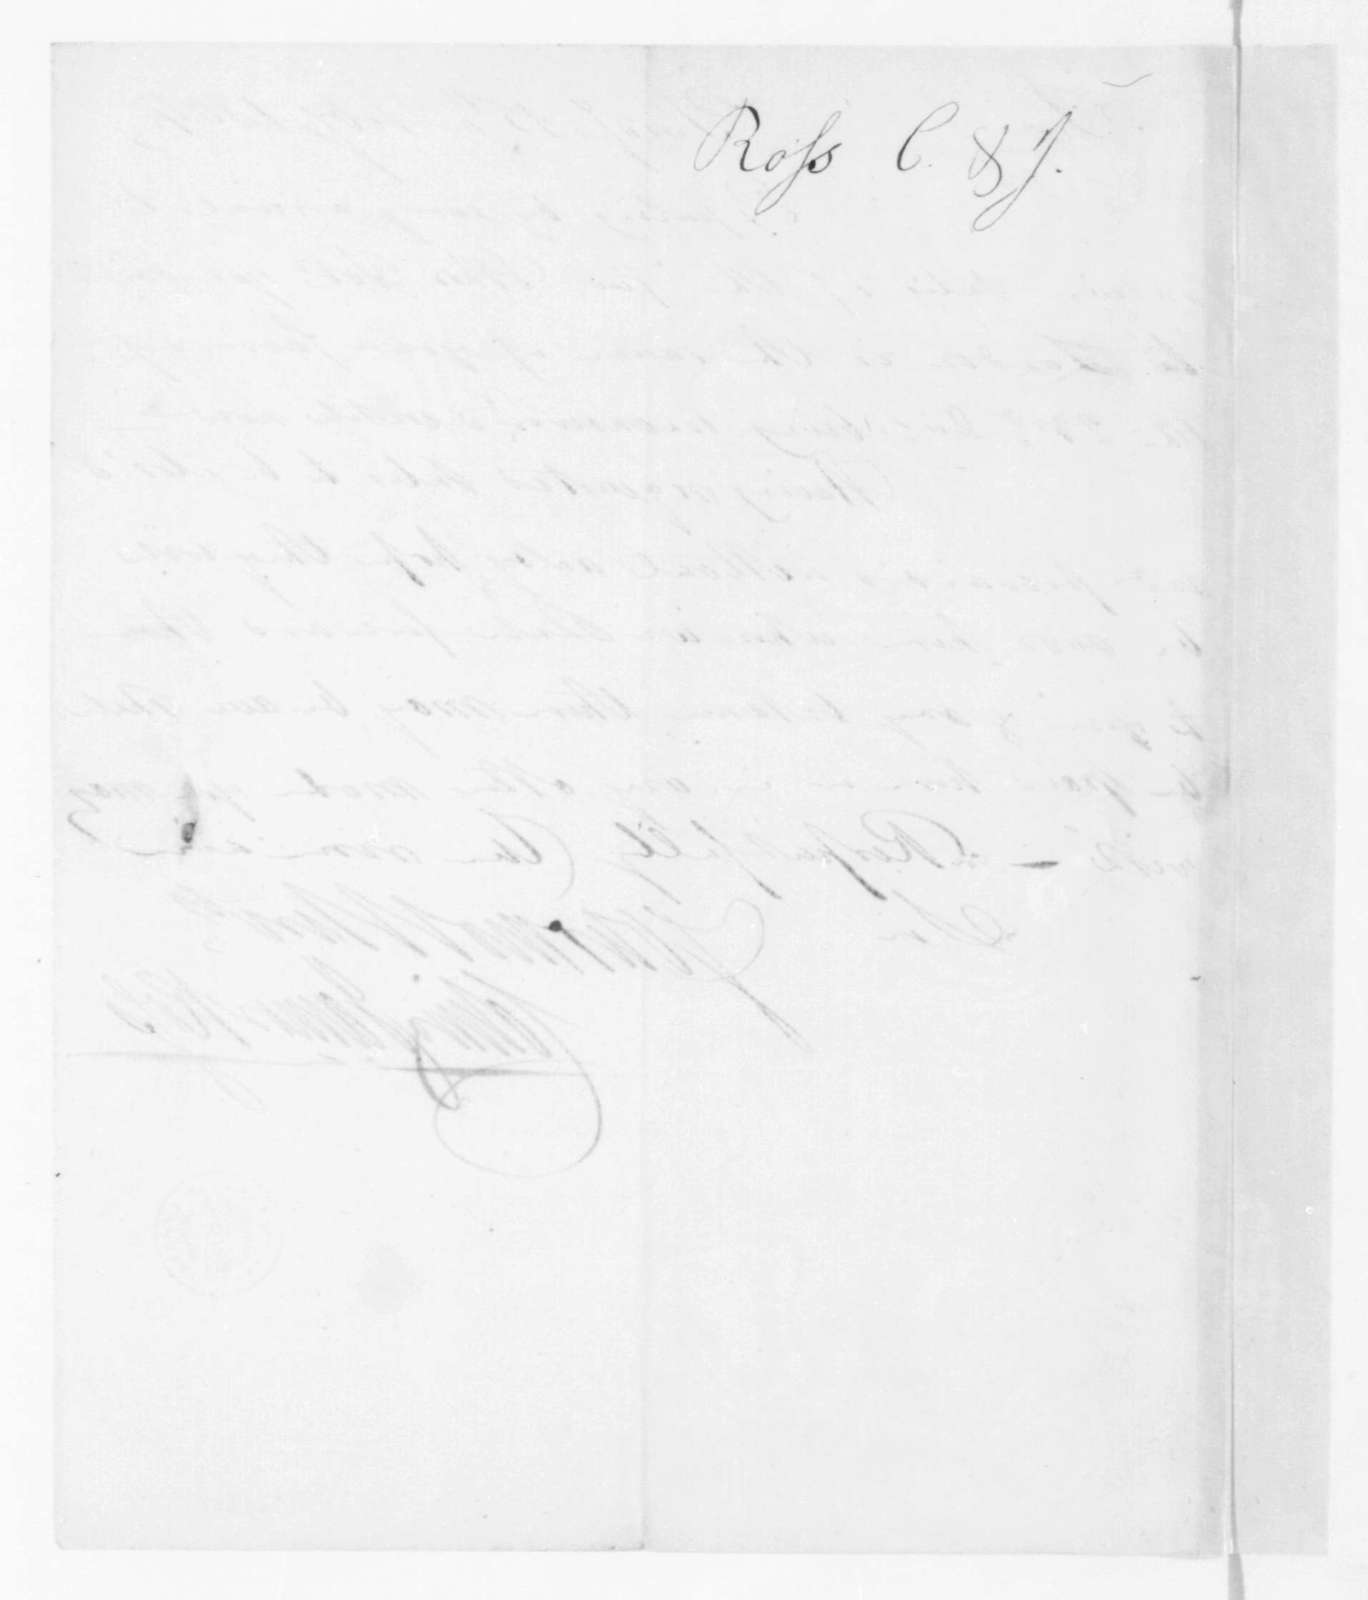 Colin and James Ross to James Madison, February 15, 1804.